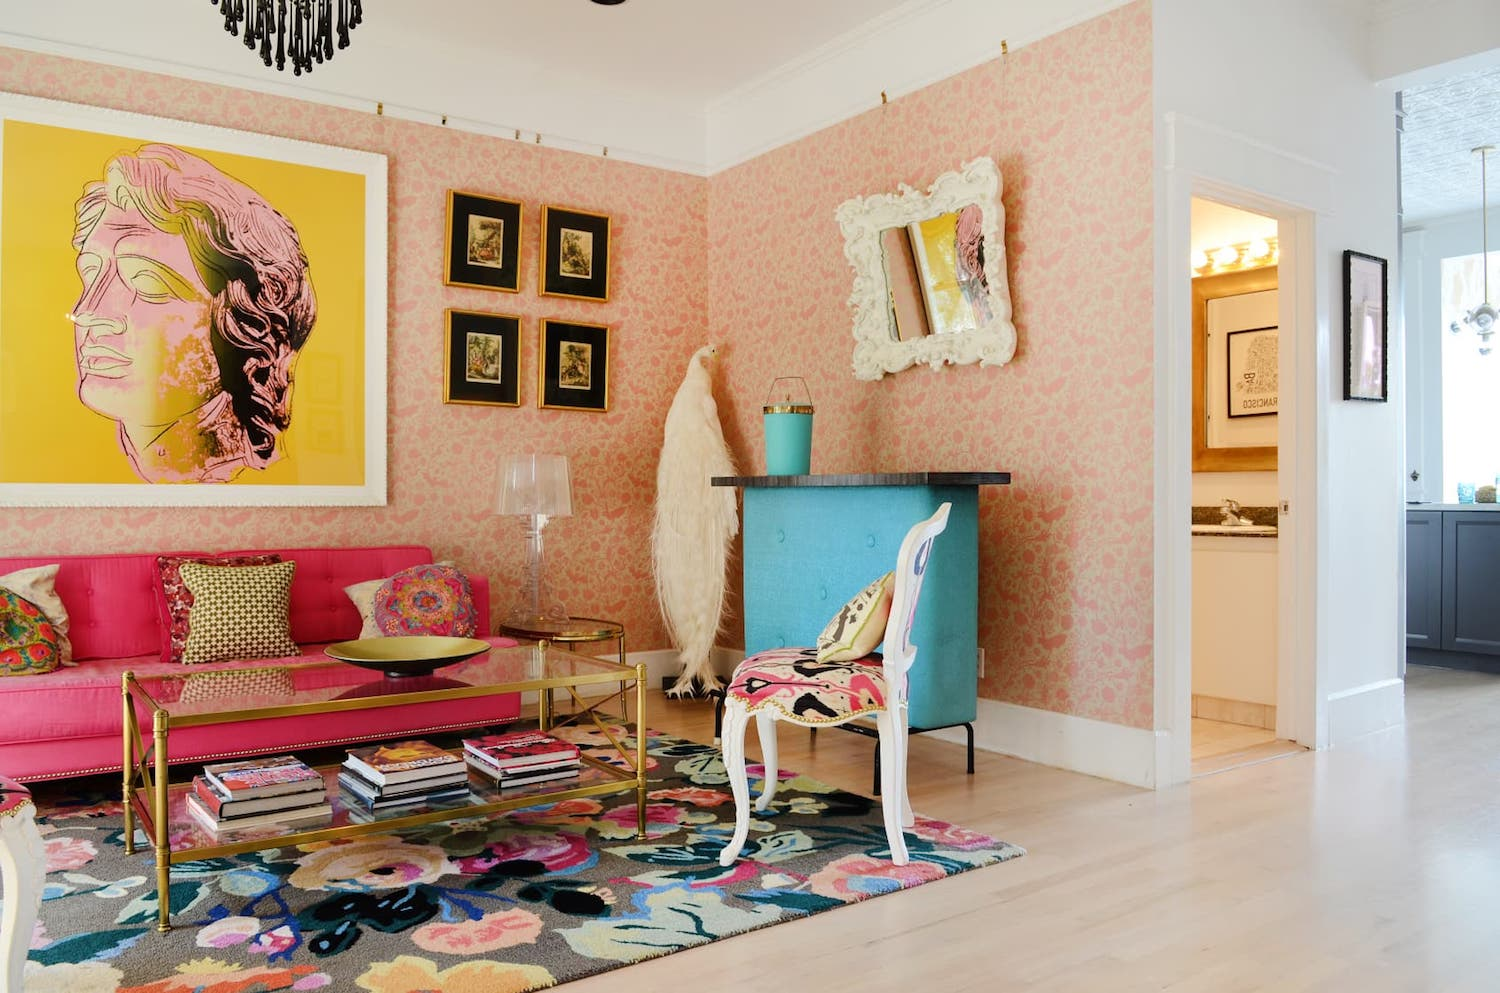 living room with pink sofa and pink wallpaper and bright art and wood floors.jpeg